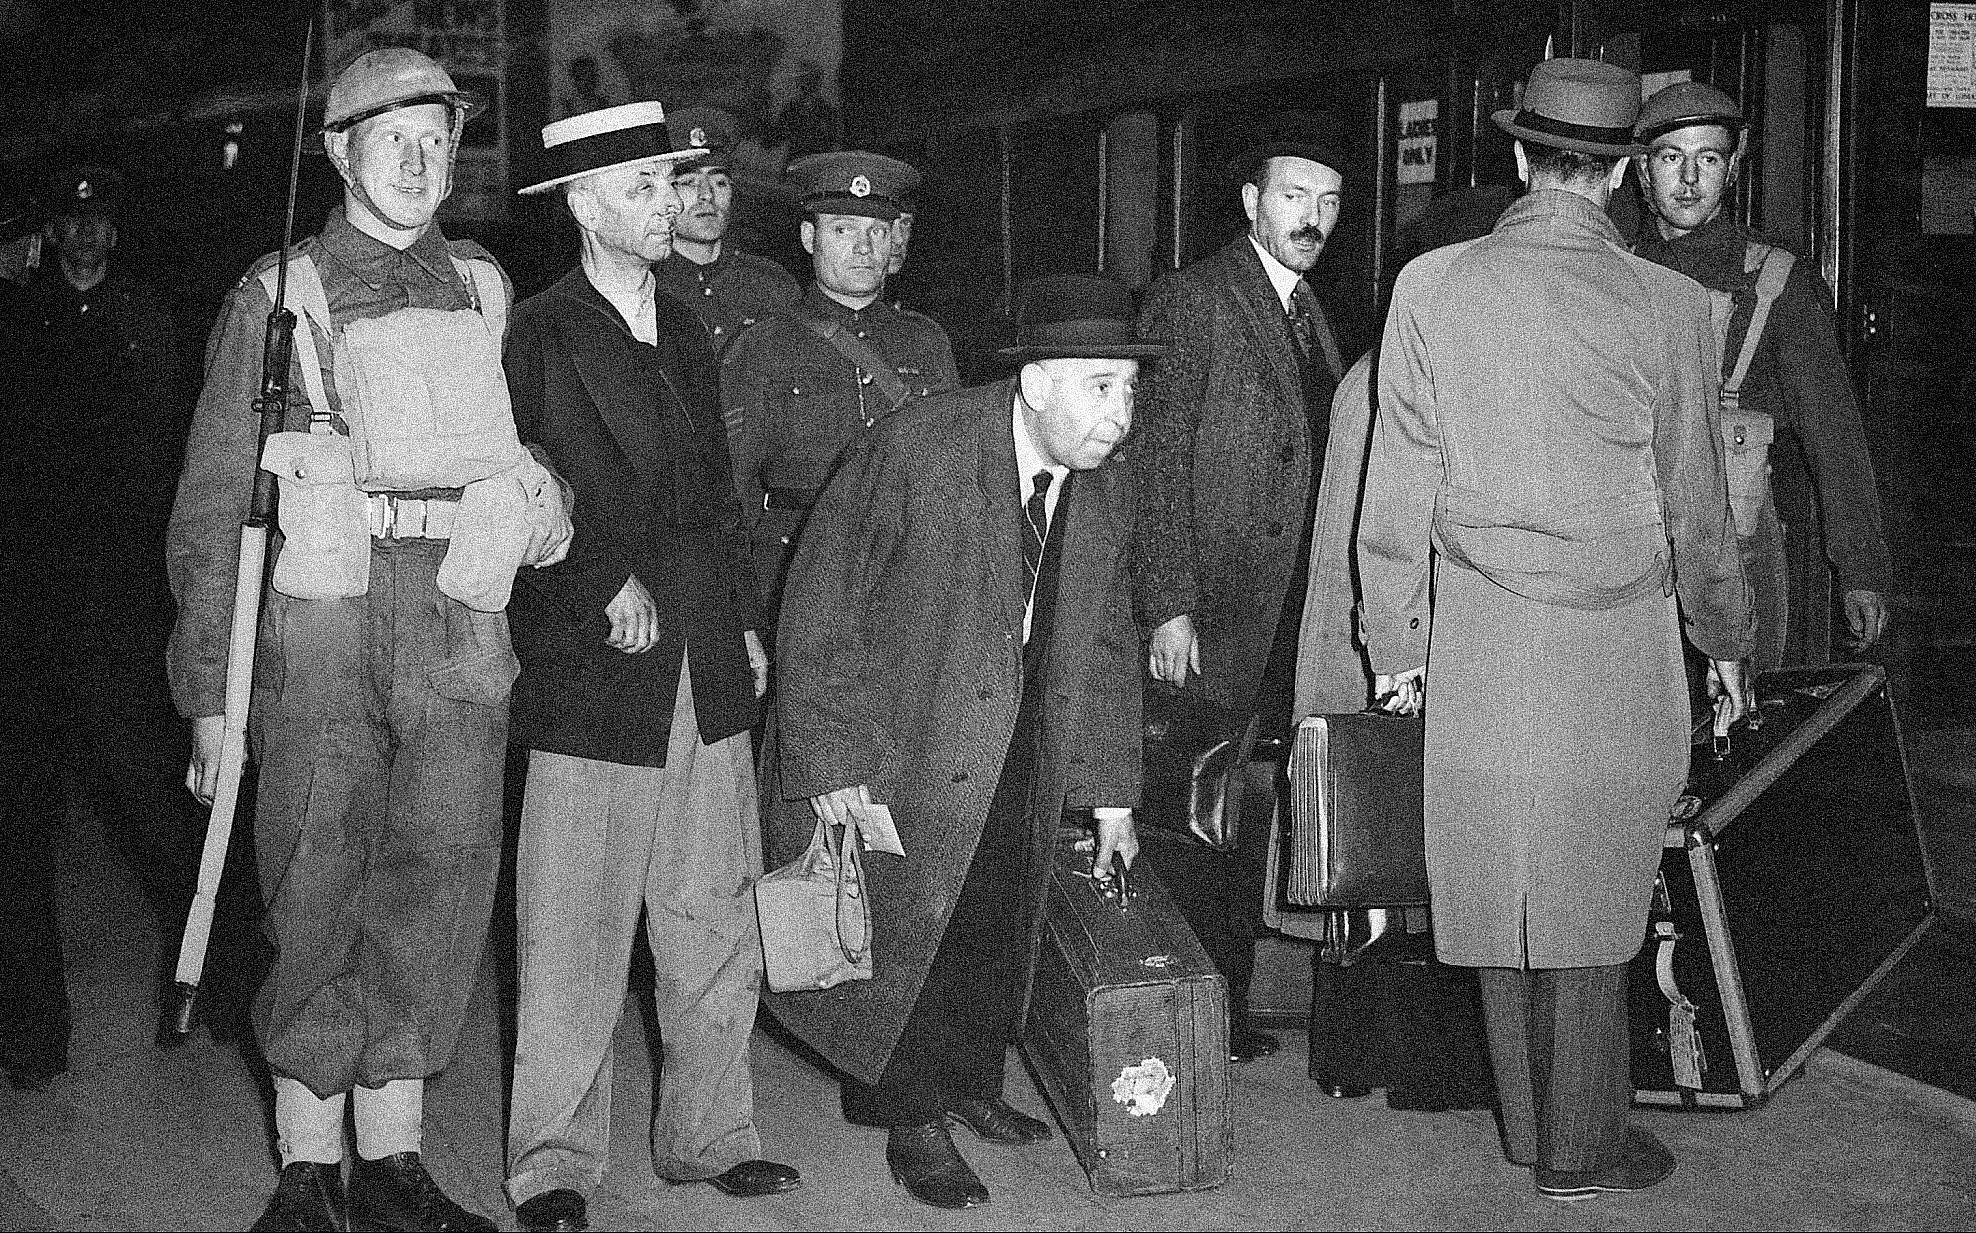 Immigrants and other 'suspects' en route to an internment camp from London, June 13, 1940. (AP Photo)